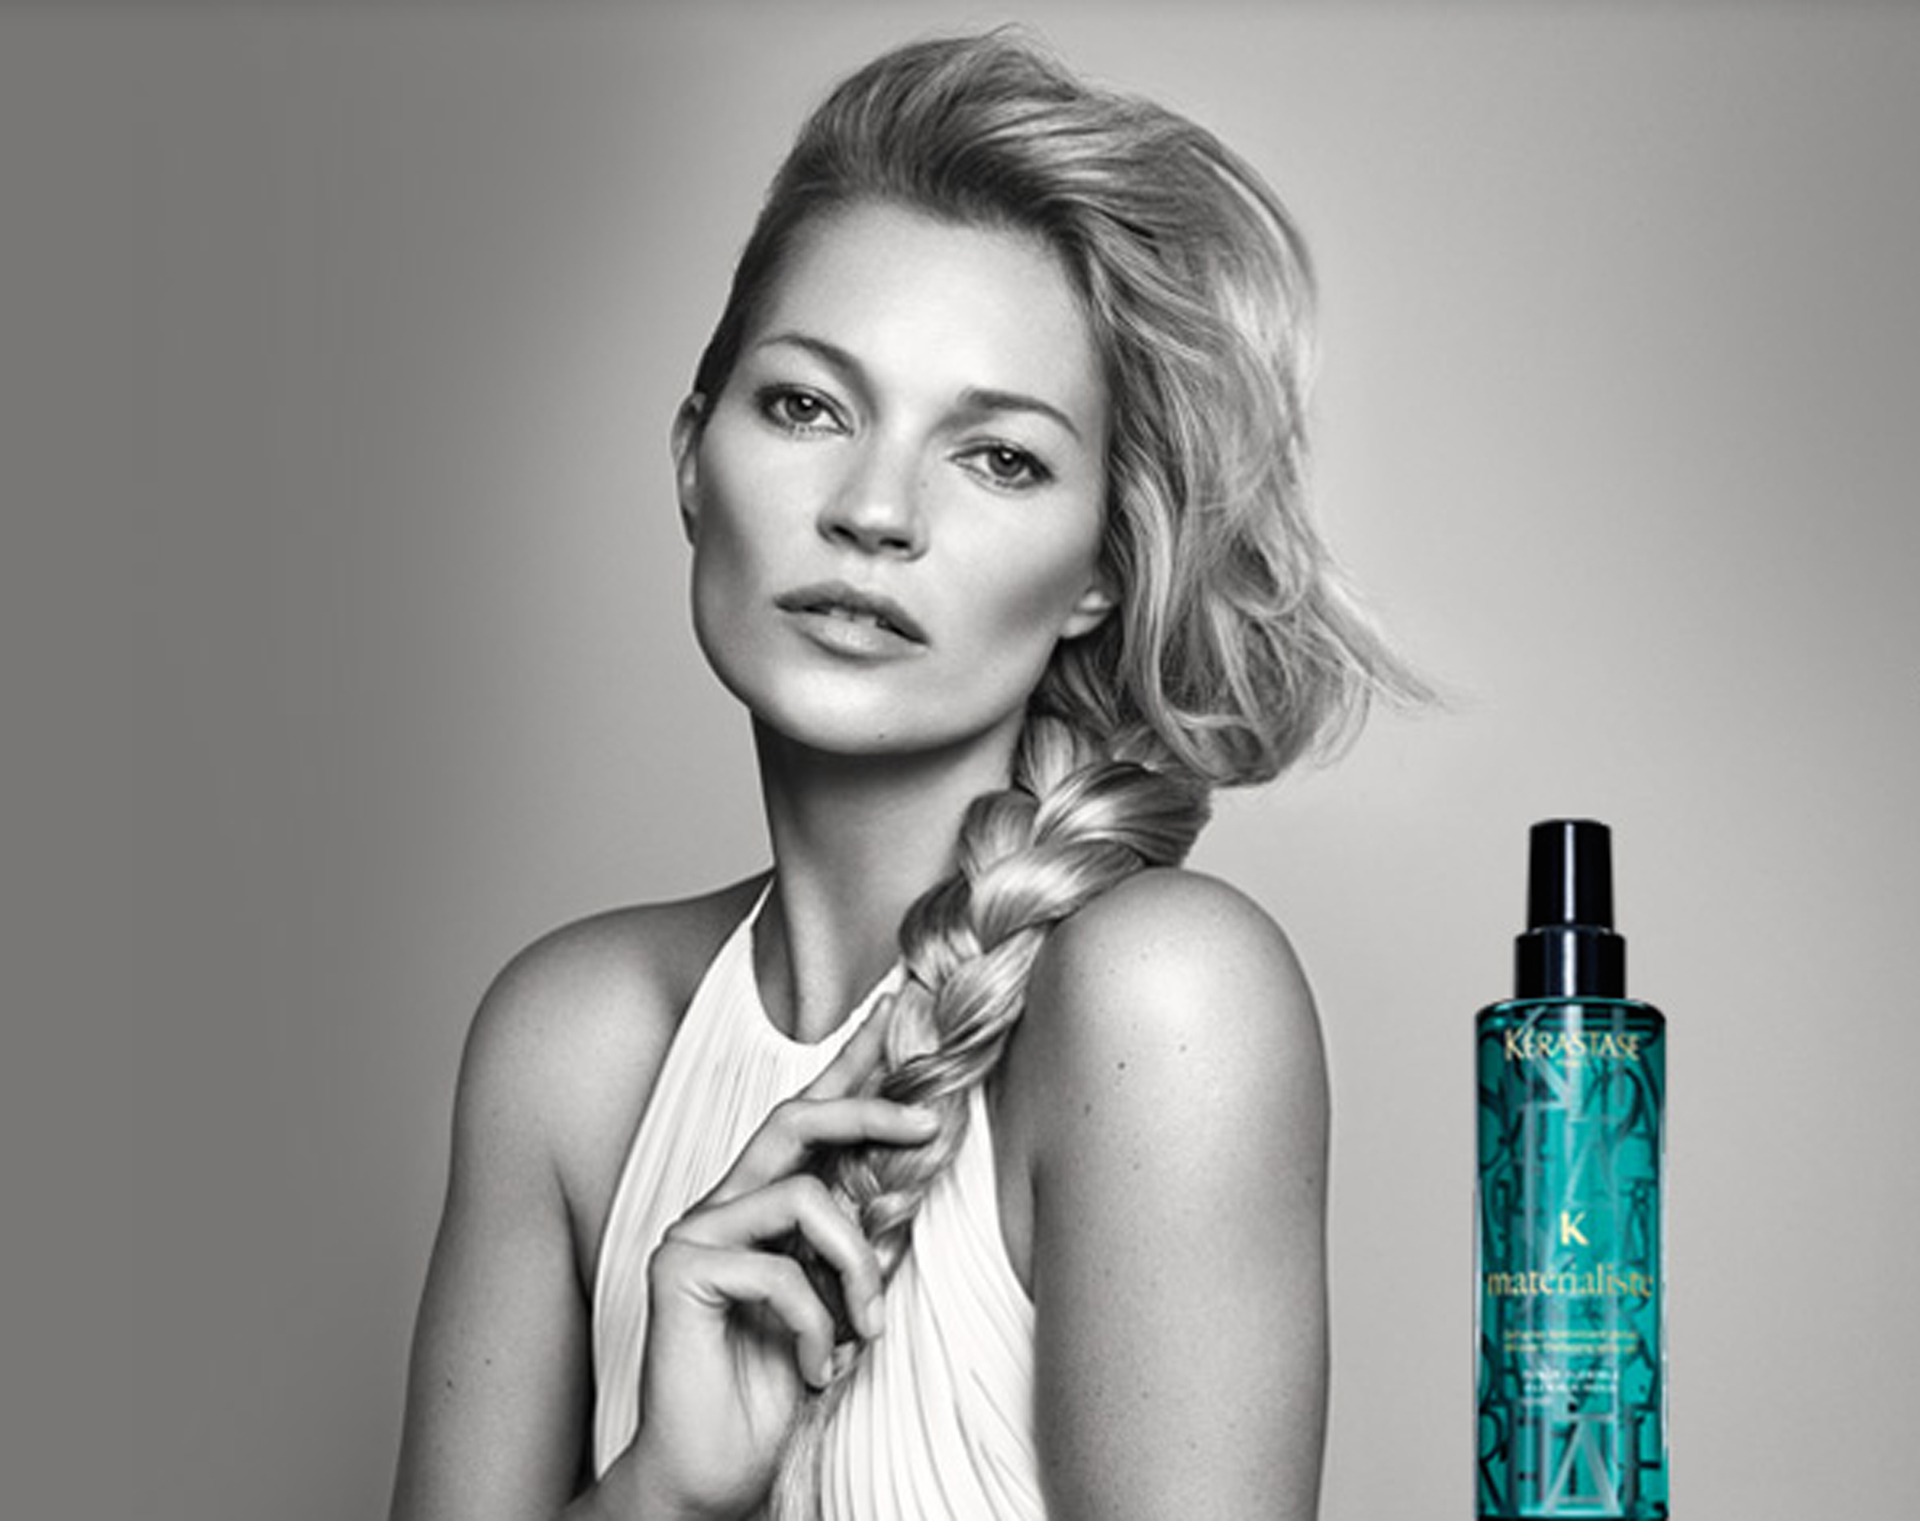 KERASTASE MATERIALISTE . All-Over Thickening Spray Gel